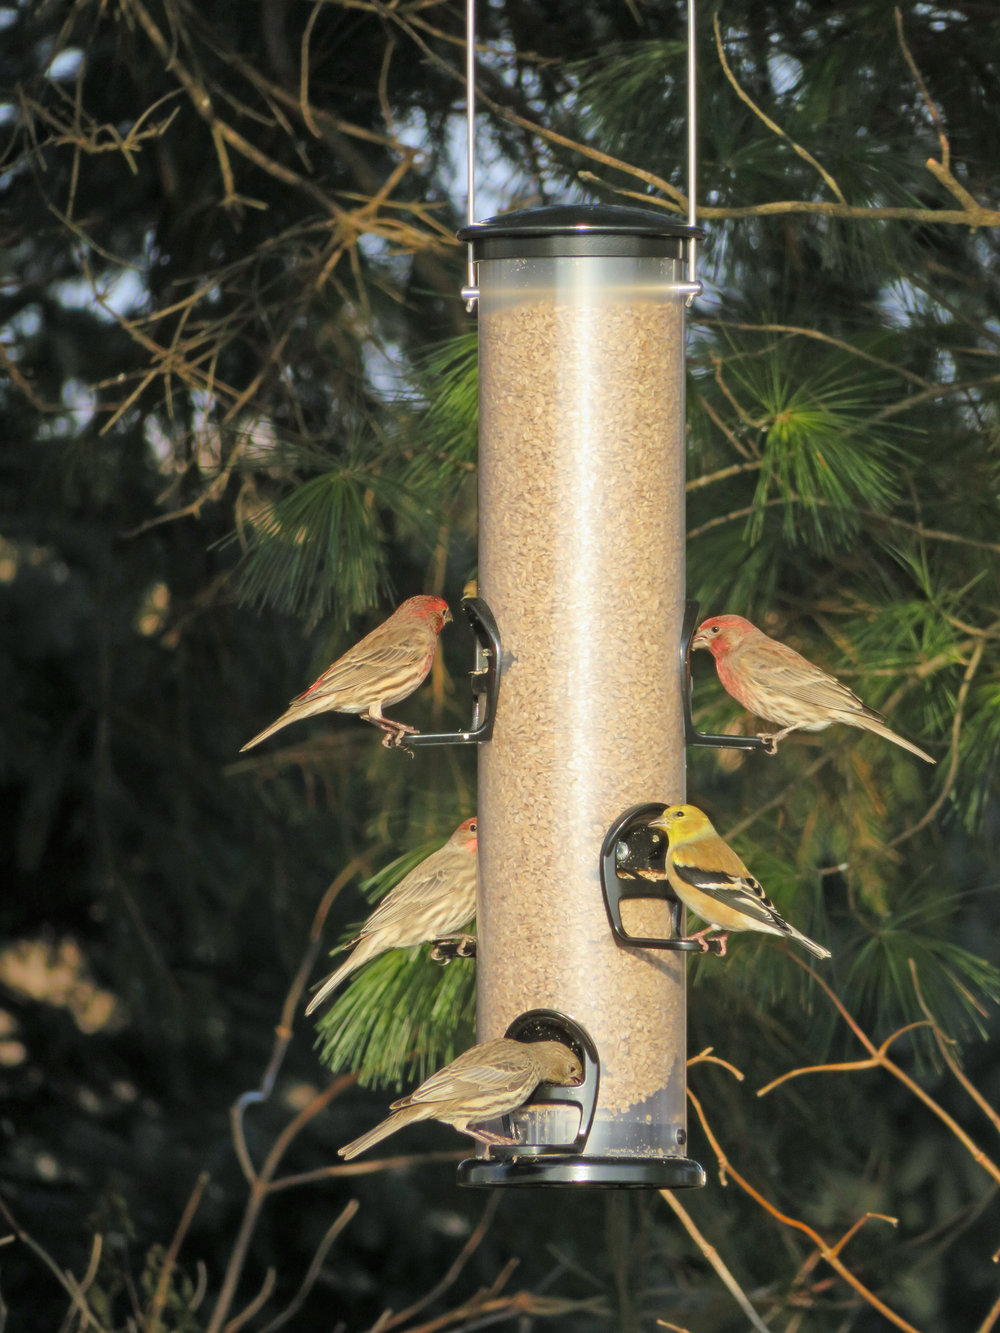 House finches and American goldfinches are feeding on an Eco-clean feeder stocked with sunflower medium chips at Goose Pond Sanctuary.  Photo by Mark Martin